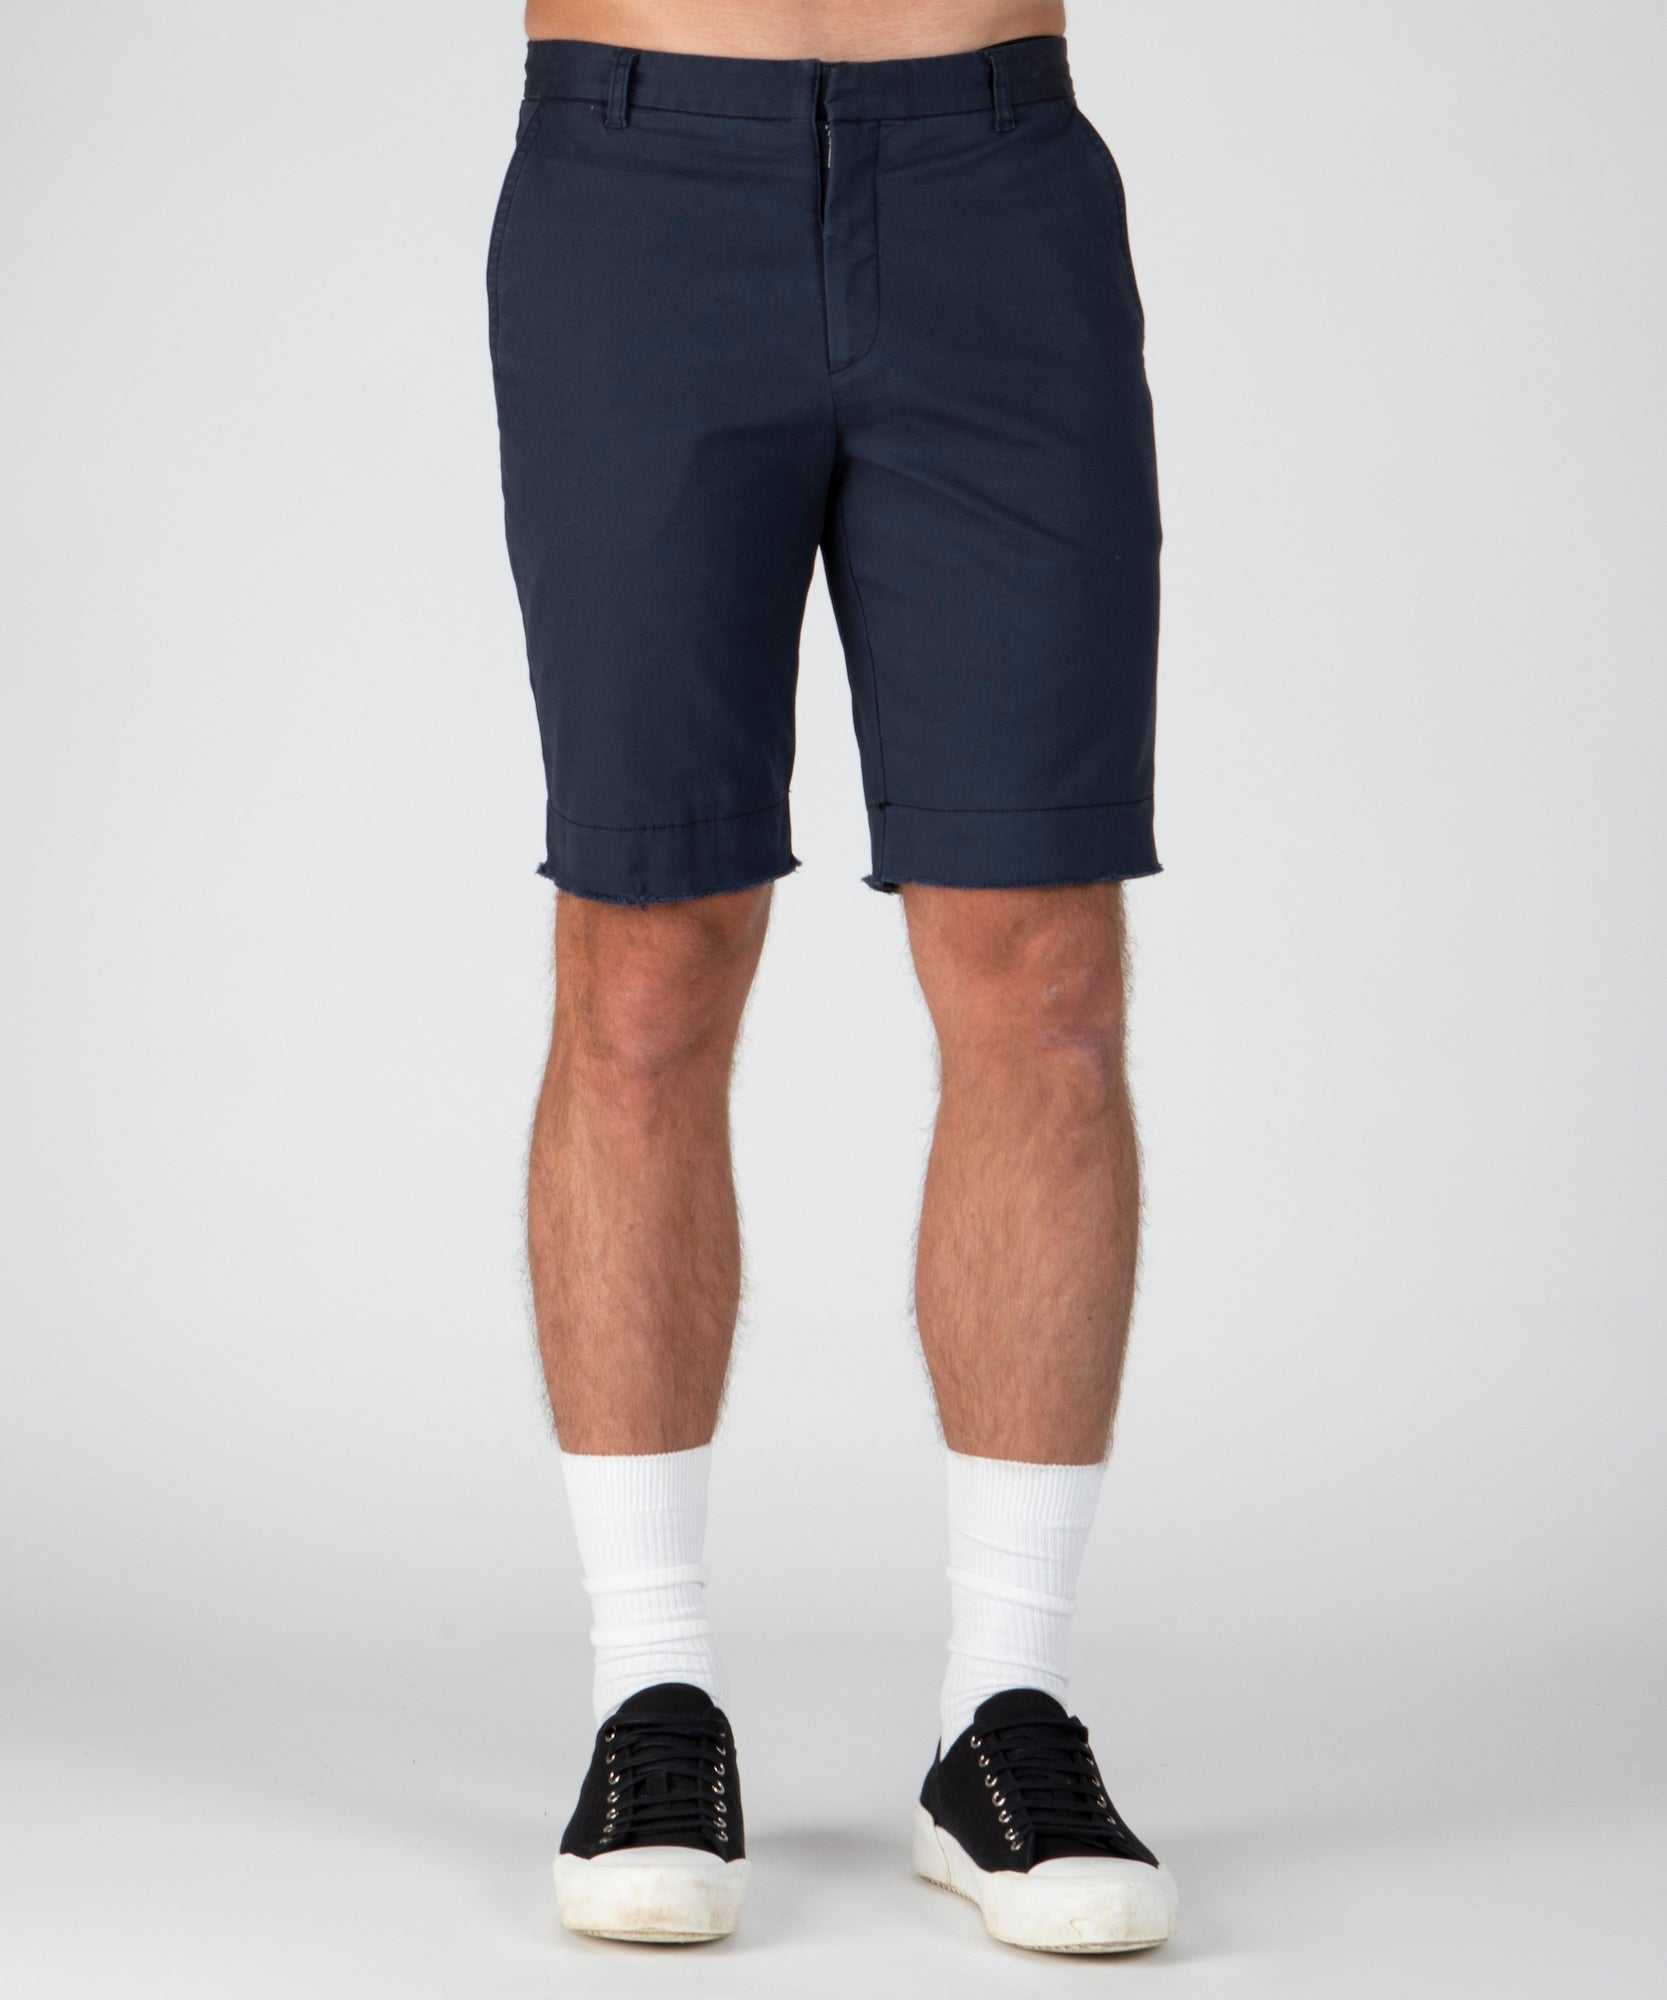 Dark Navy Stretch Cotton Garment Wash Shorts - Men's Luxe Shorts by ATM Anthony Thomas Melillo